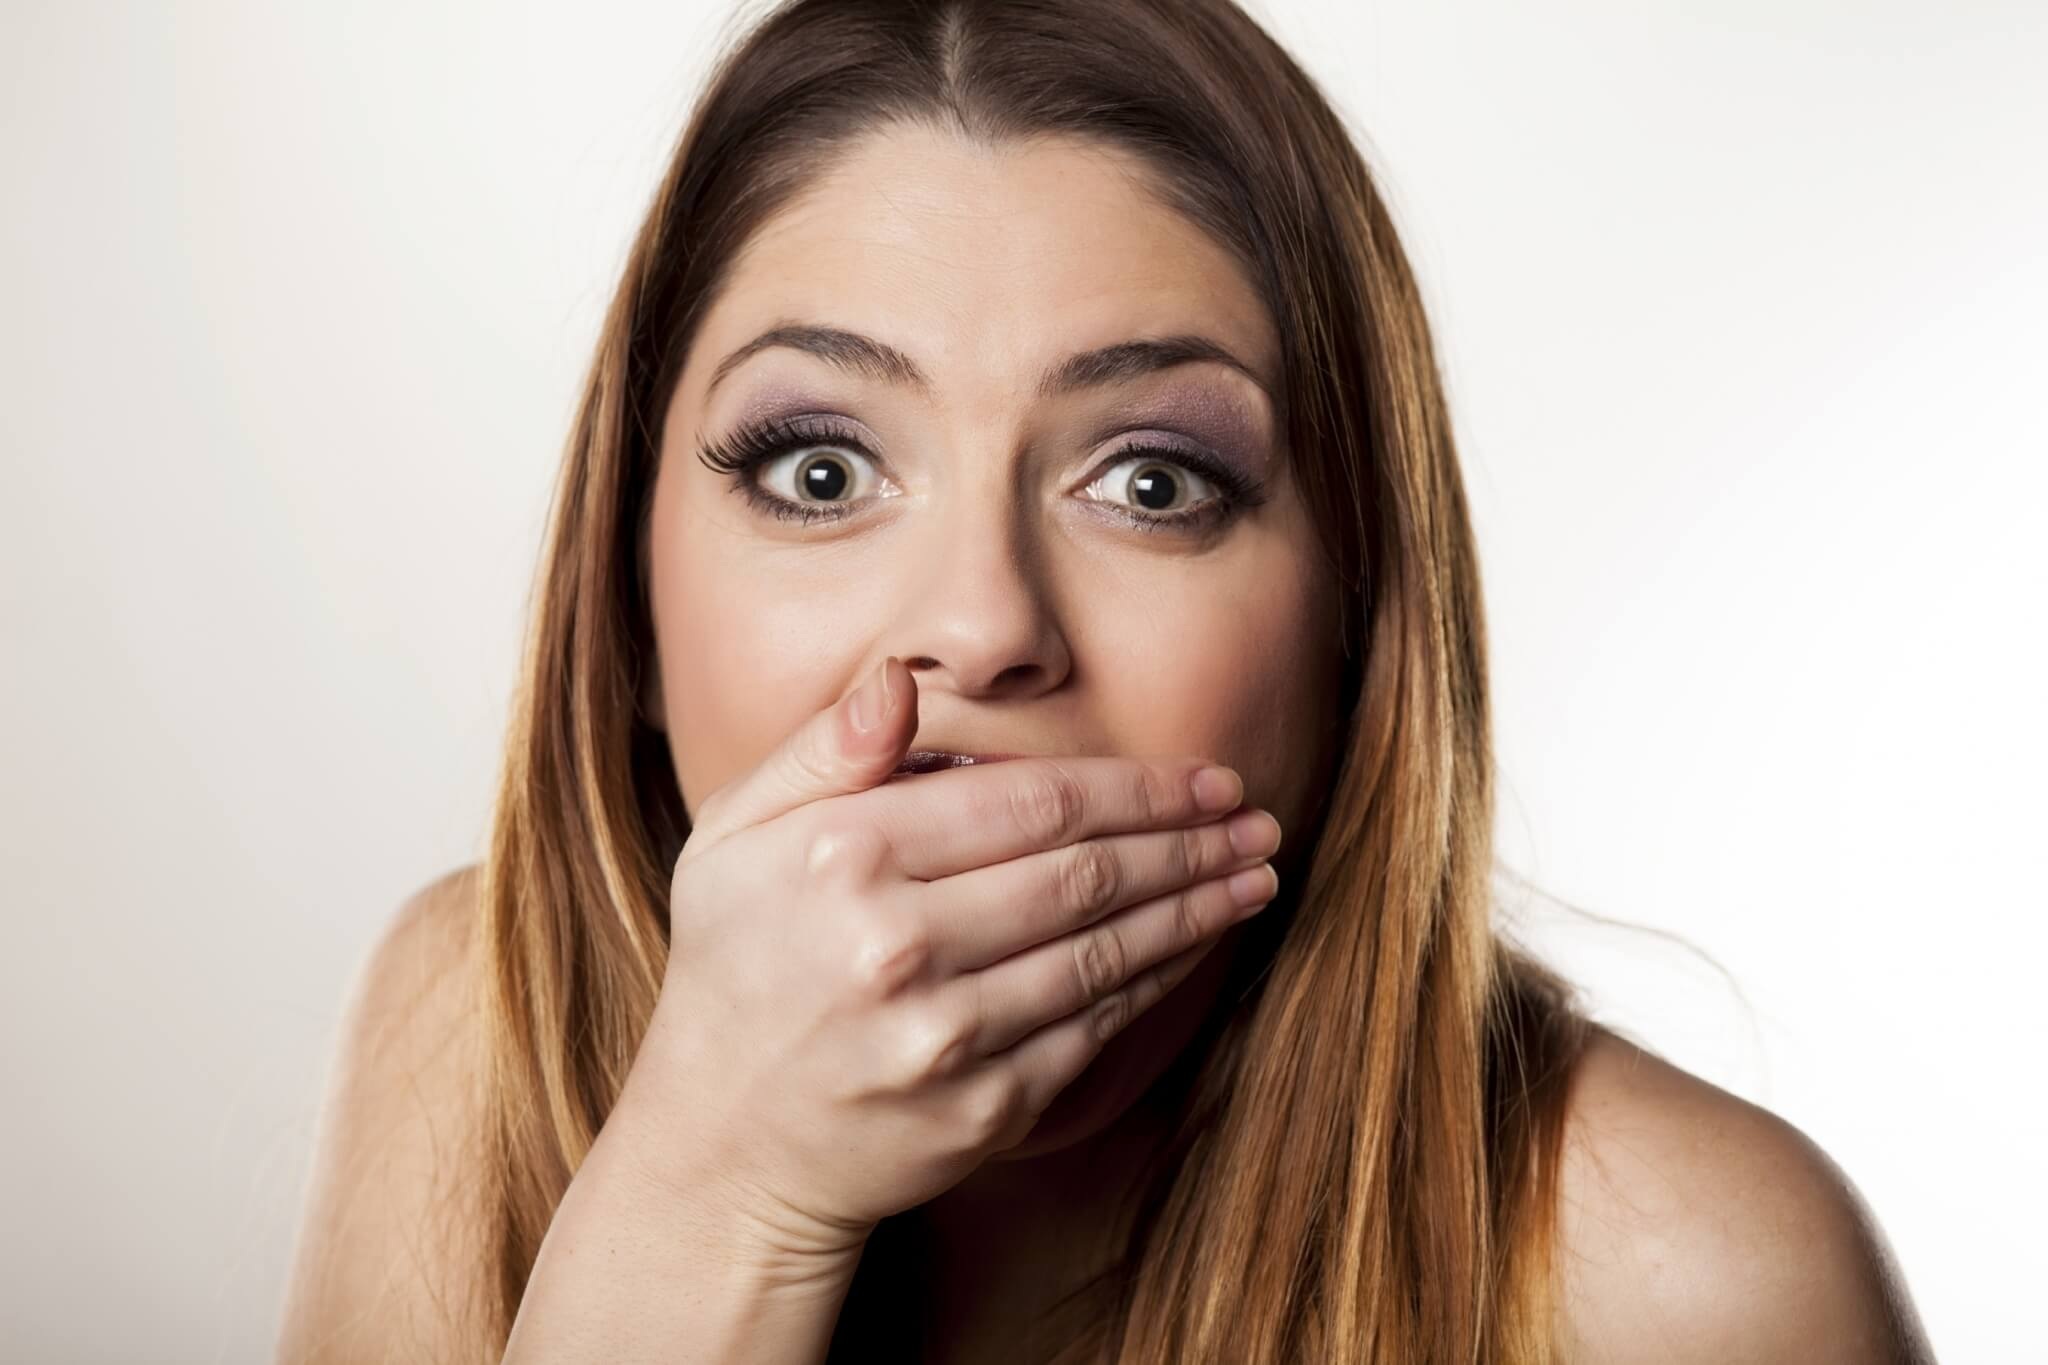 Ashamed-young-woman-covering-her-mouth-with-her-hand-000059843836_Large-1.jpg.jpeg